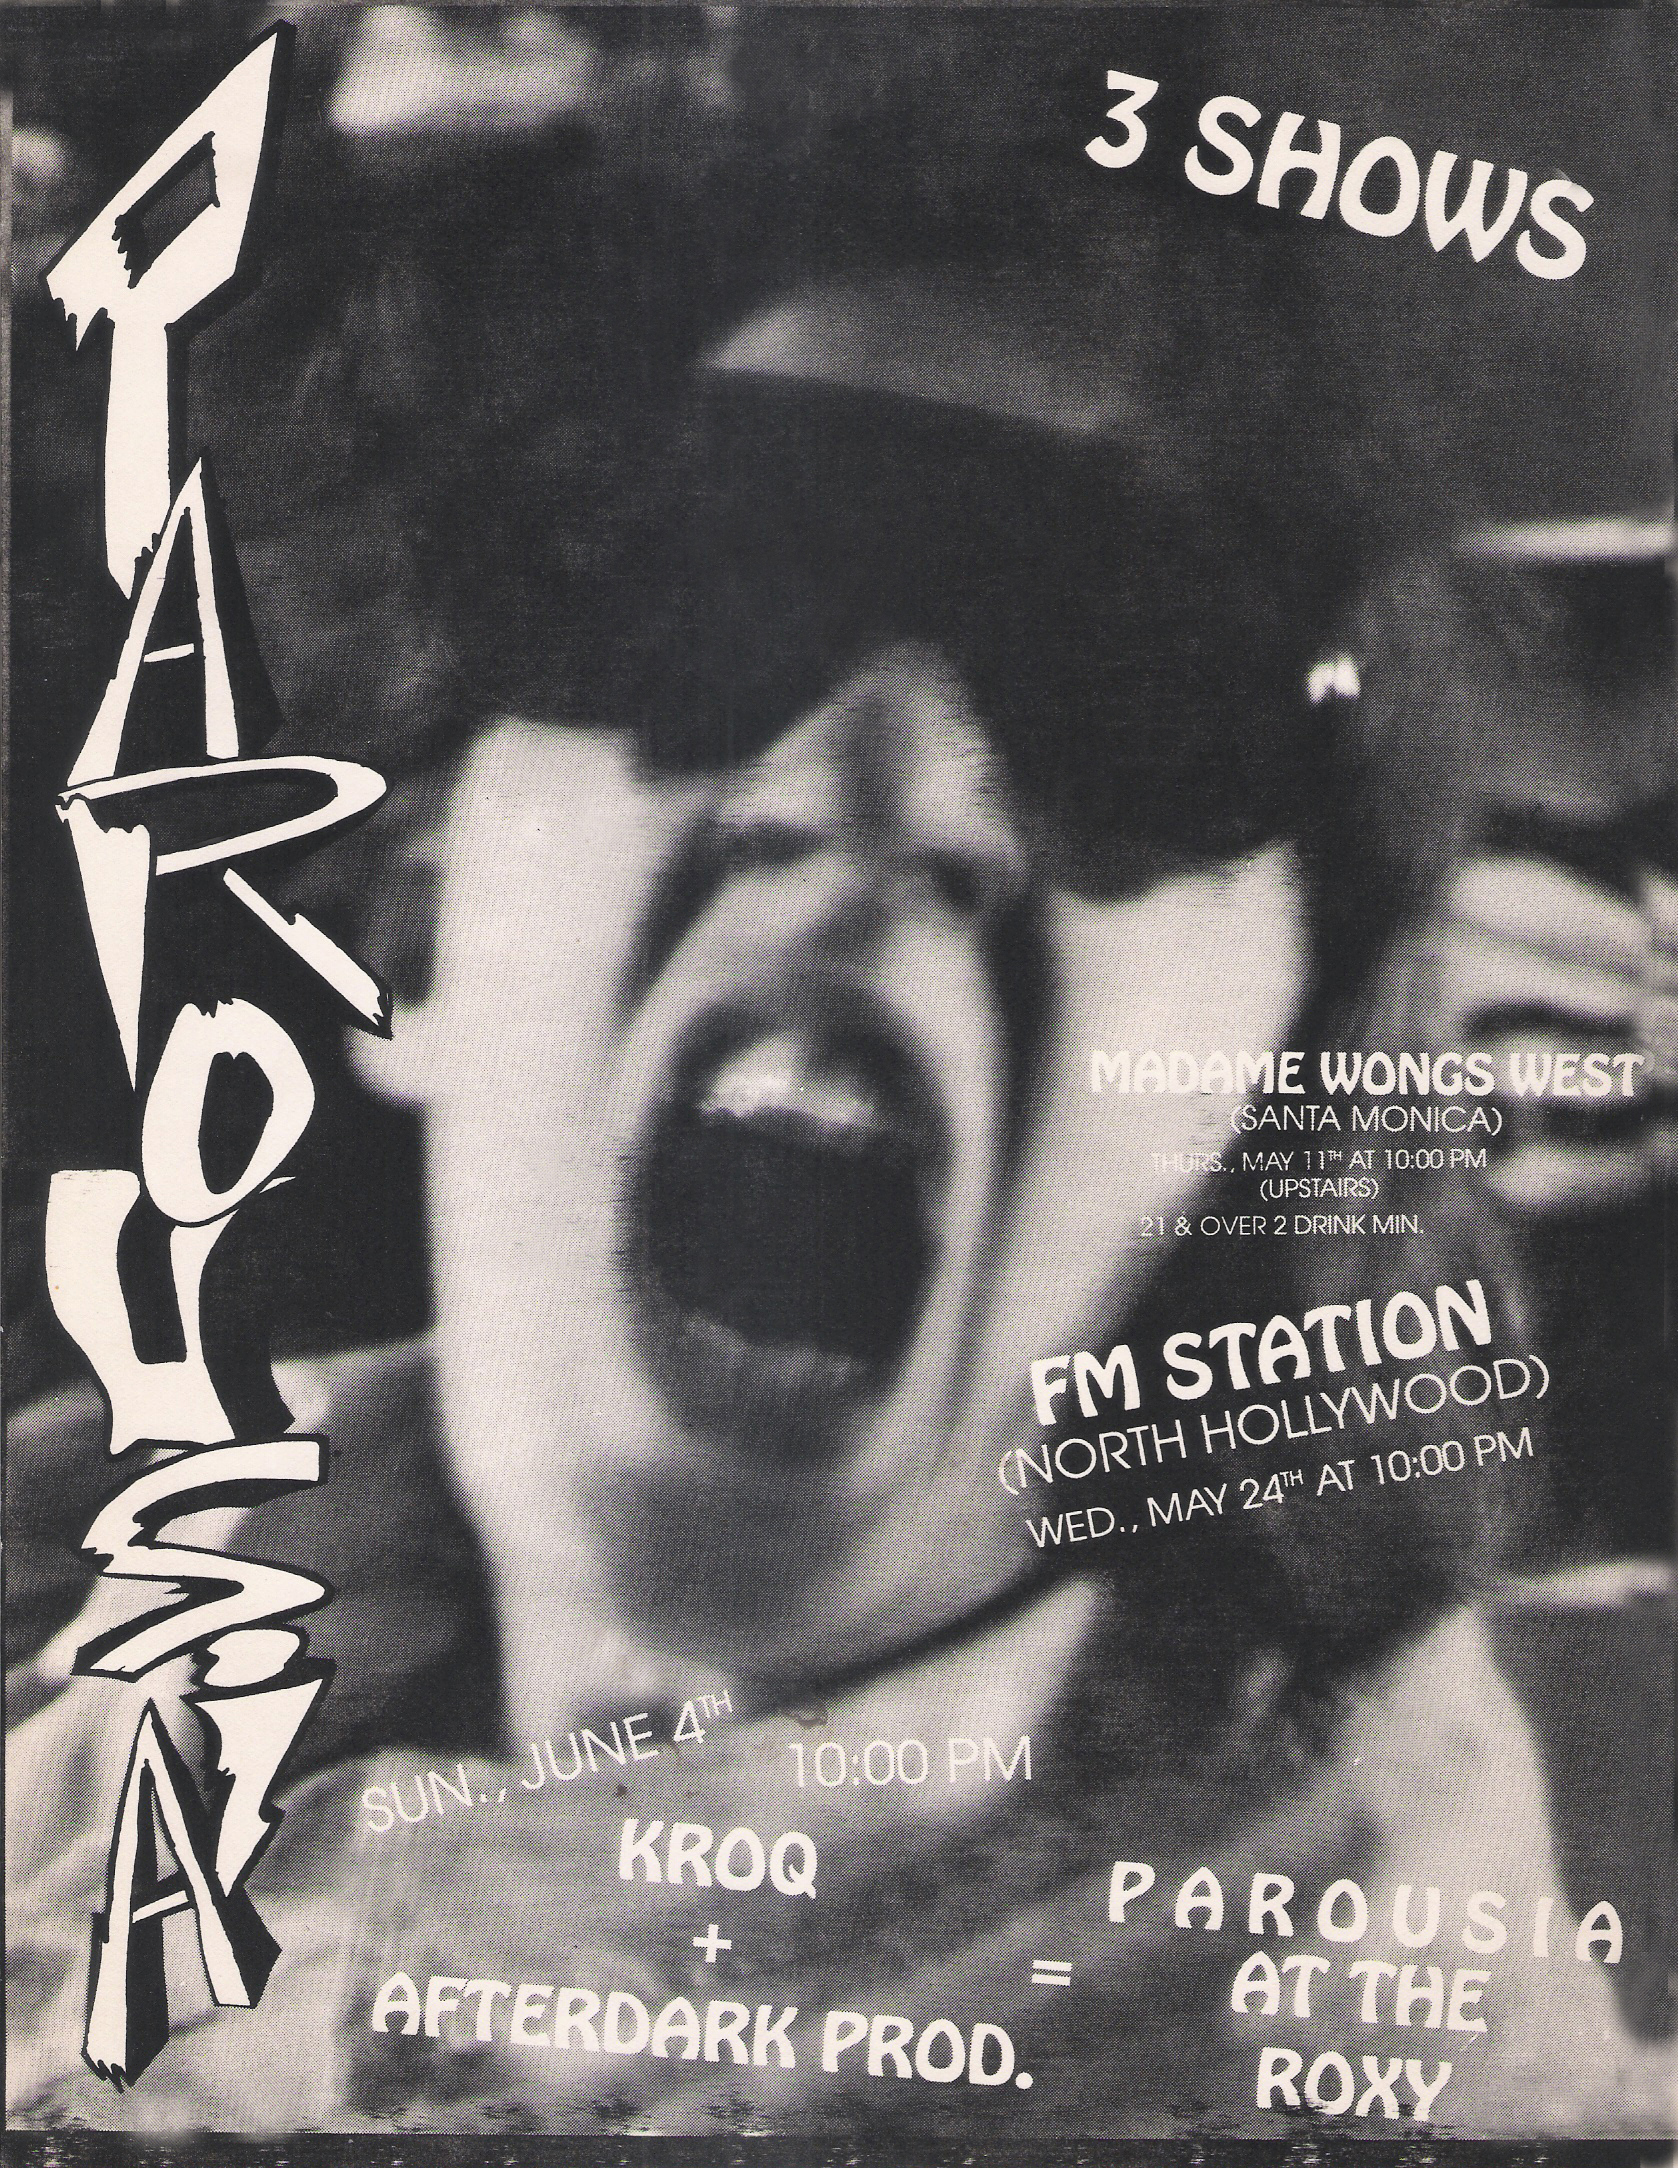 Parousia at Madame Wong's, FM Station and the ROXY, 1989